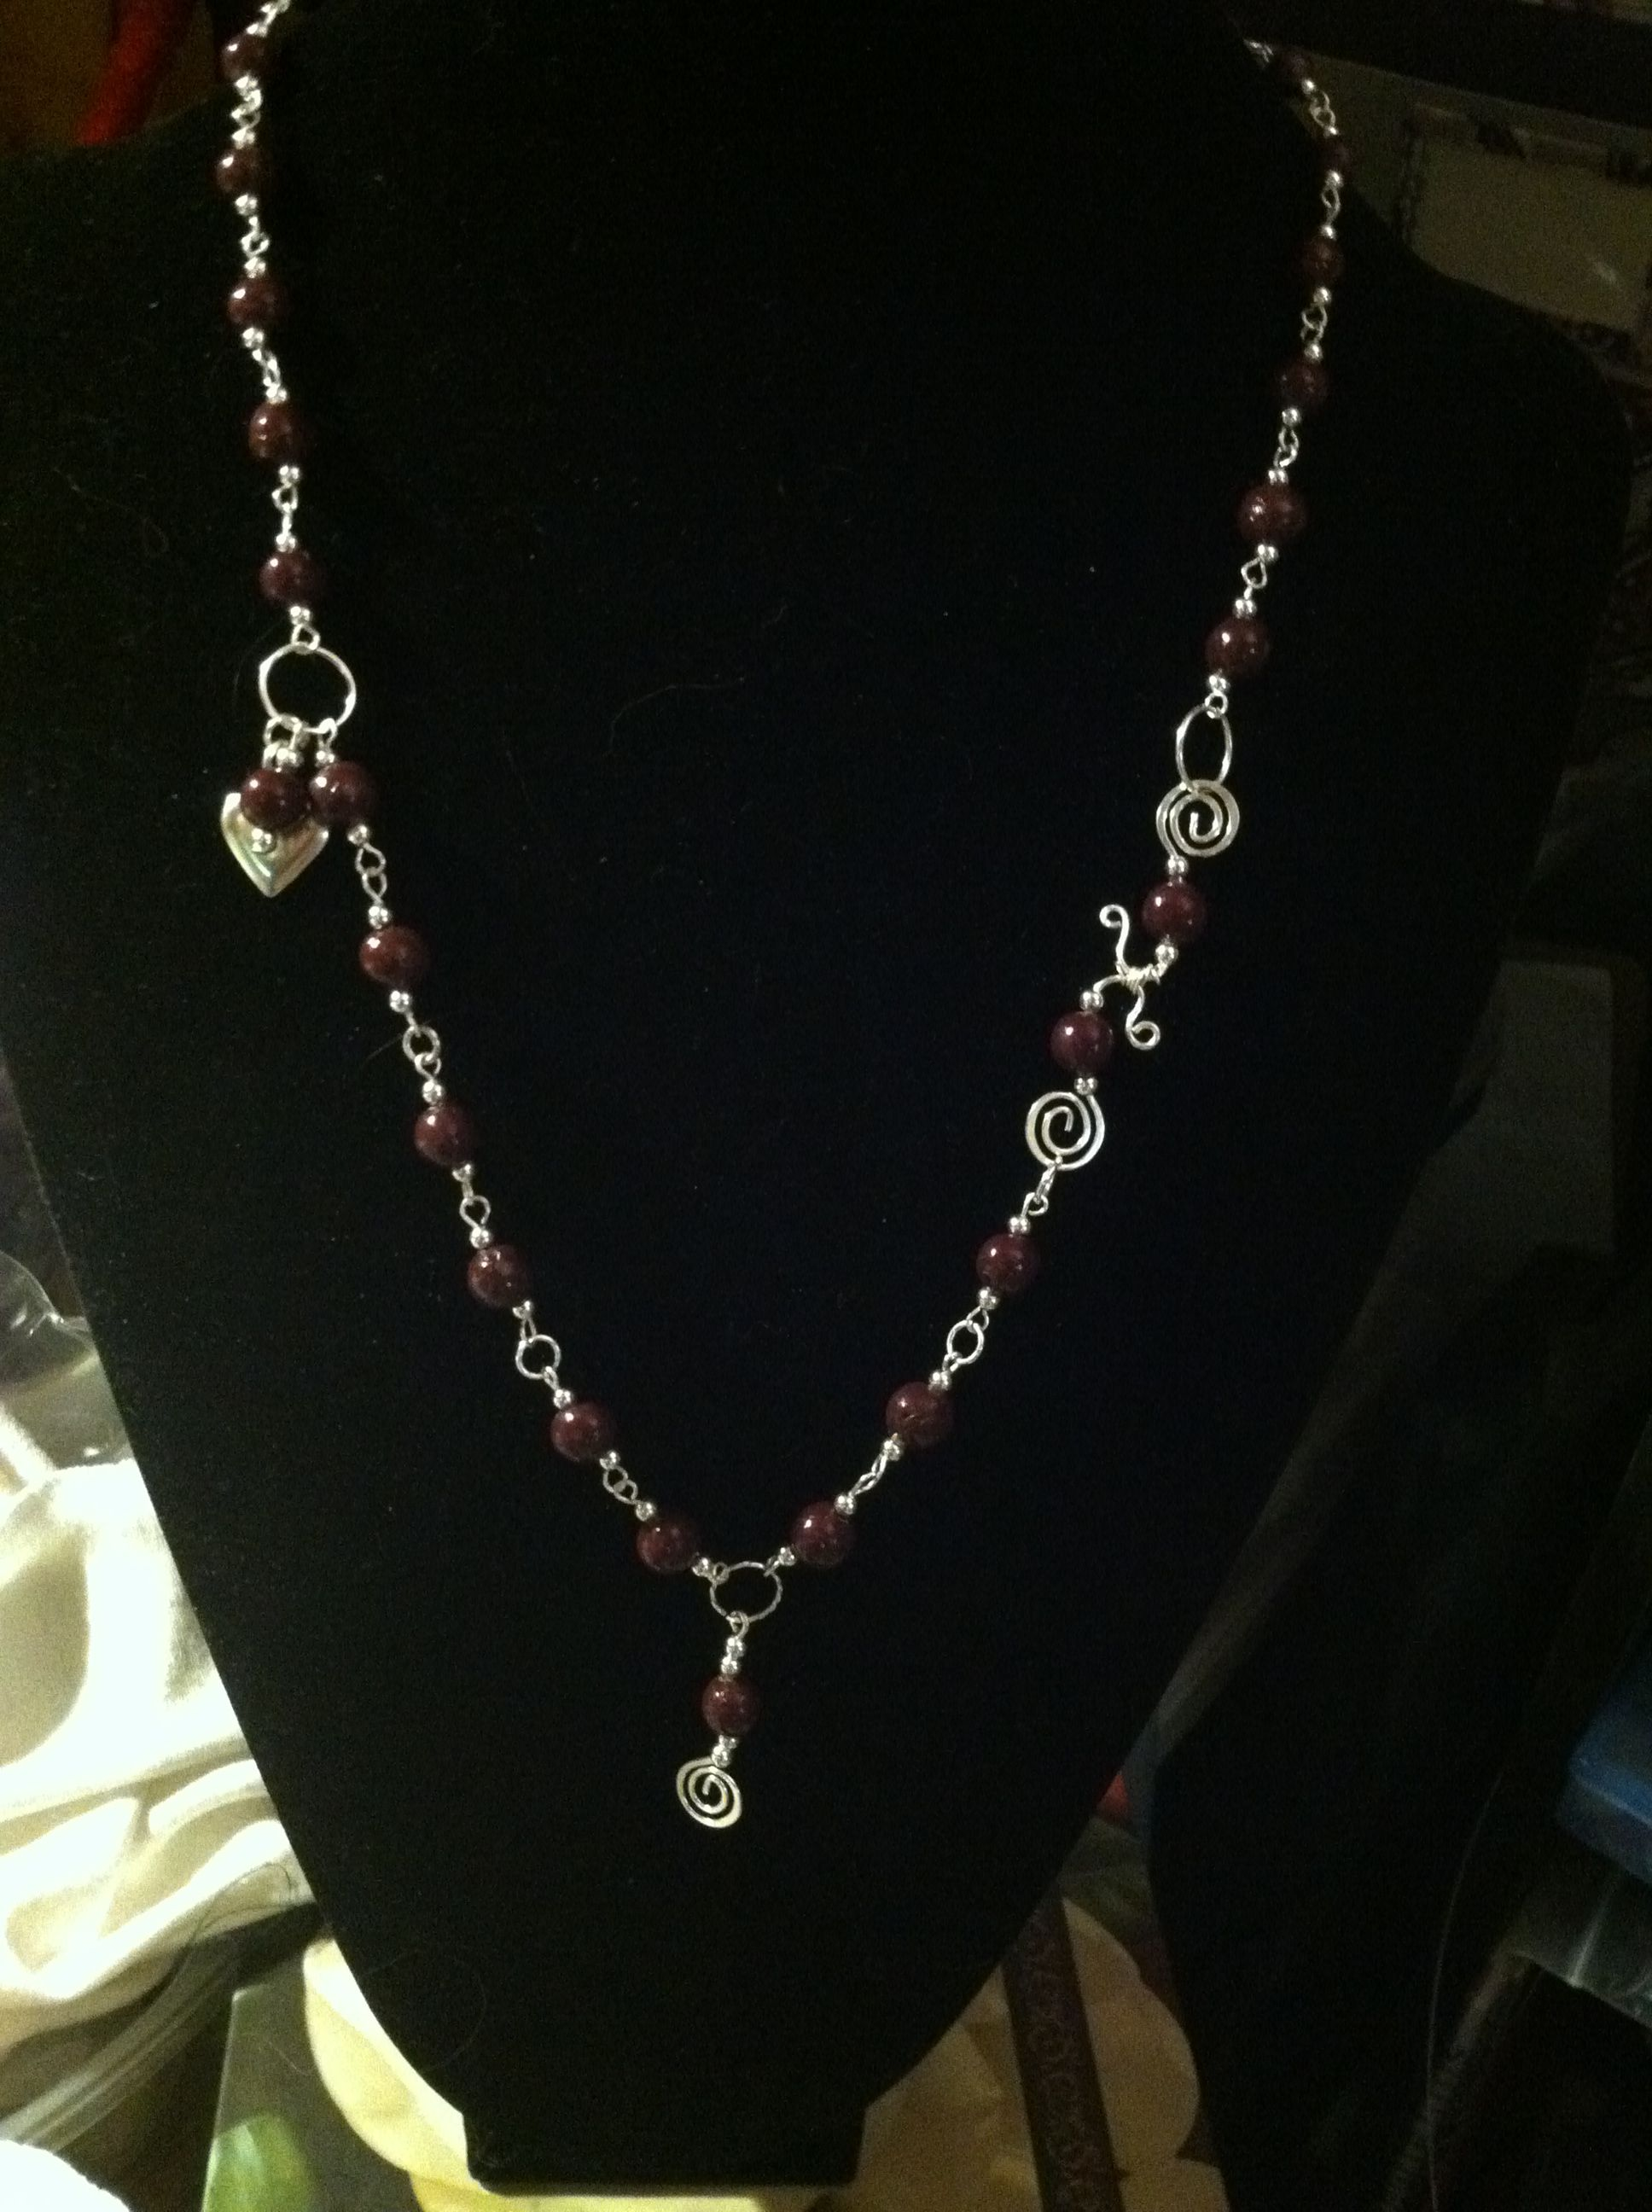 Handcrafted necklace - beads are made from a dried purple rose.